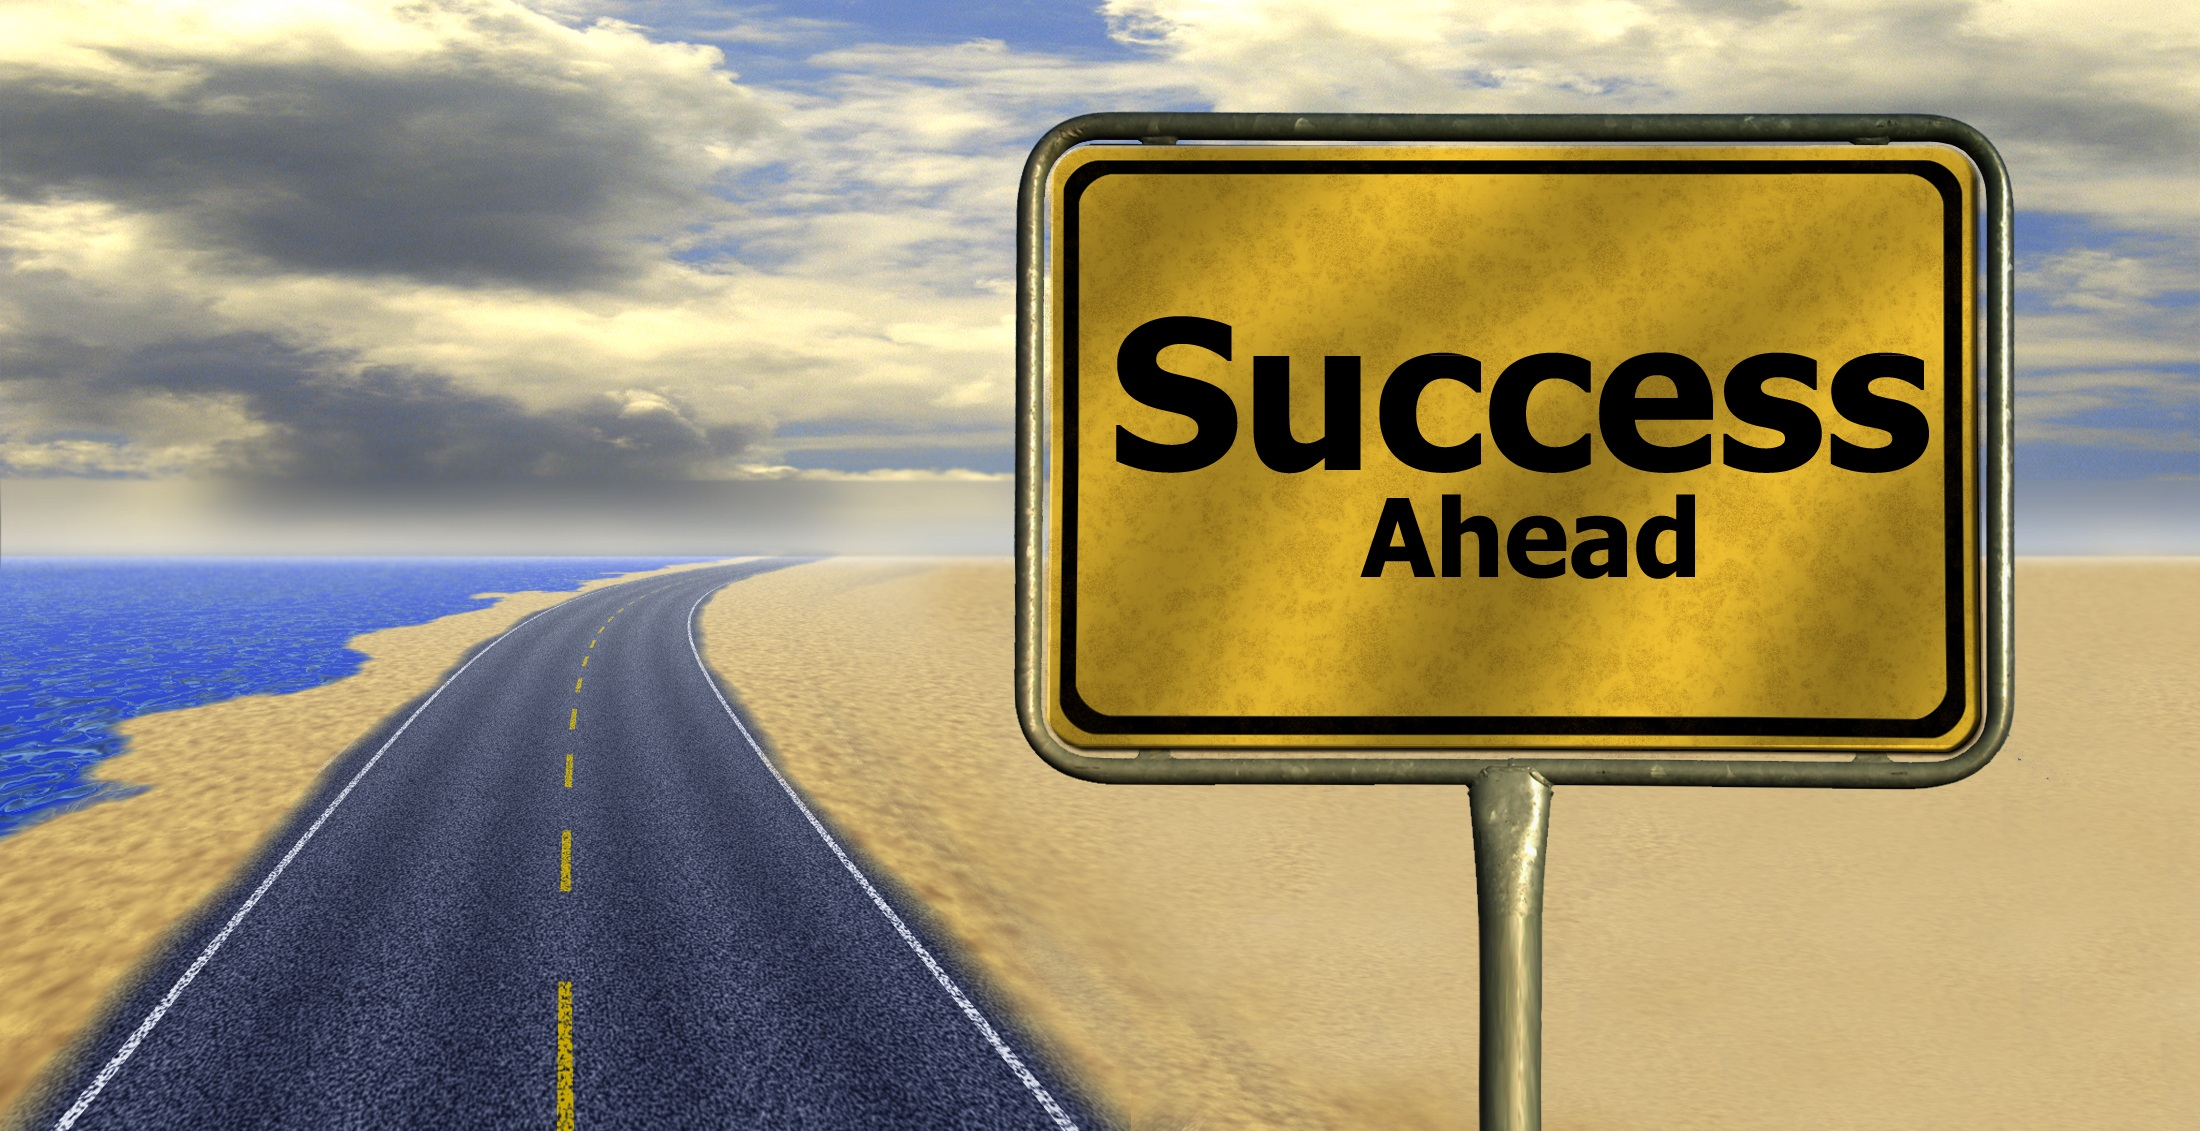 """A road sign that reads """"Success Ahead"""". (Credit: pixabay/geralt)"""